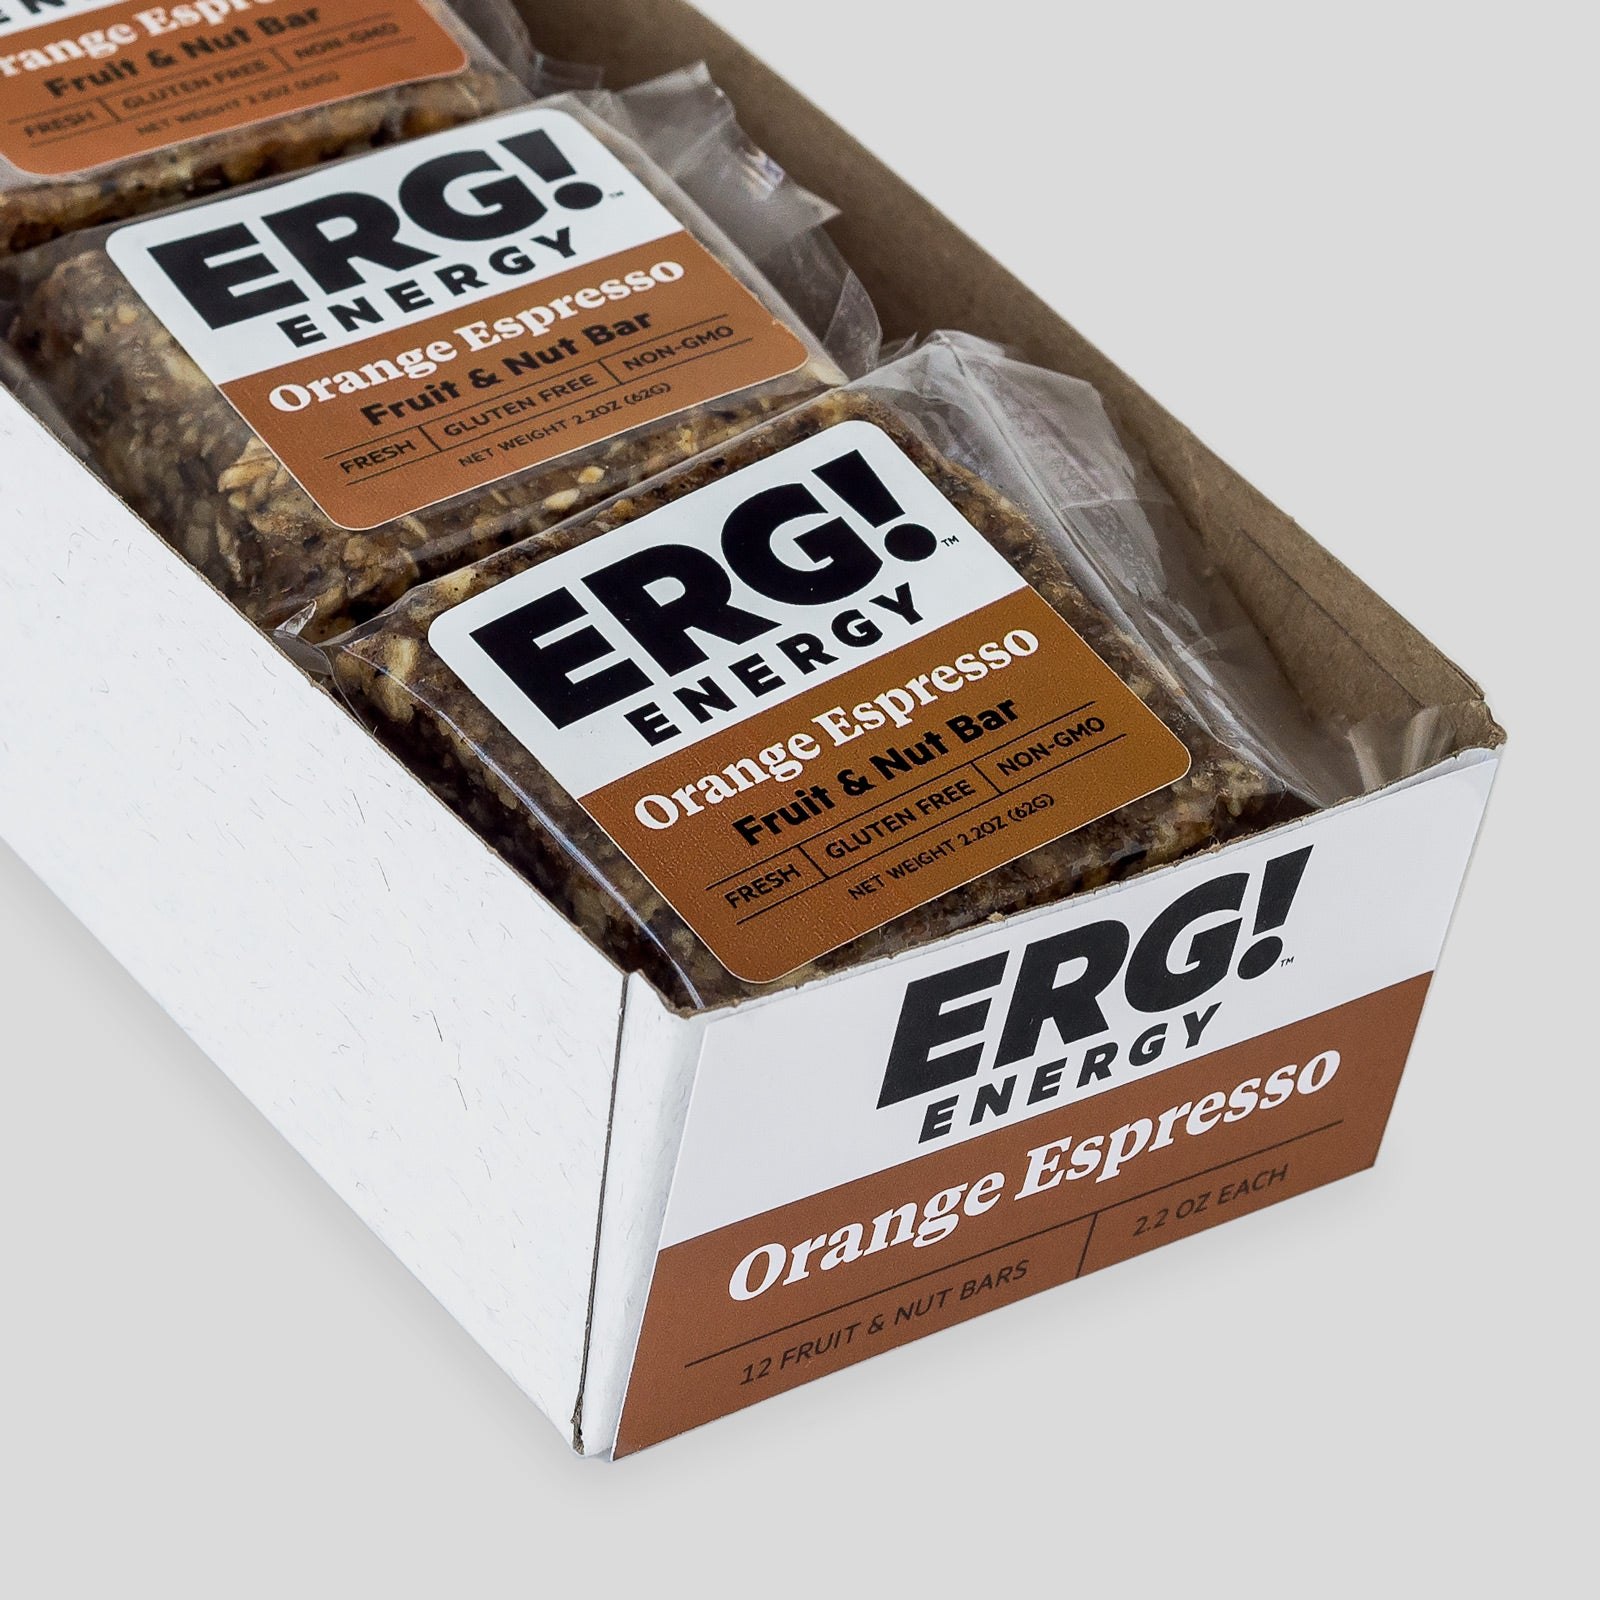 Orange Espresso ERG! - Box of 12 Bars